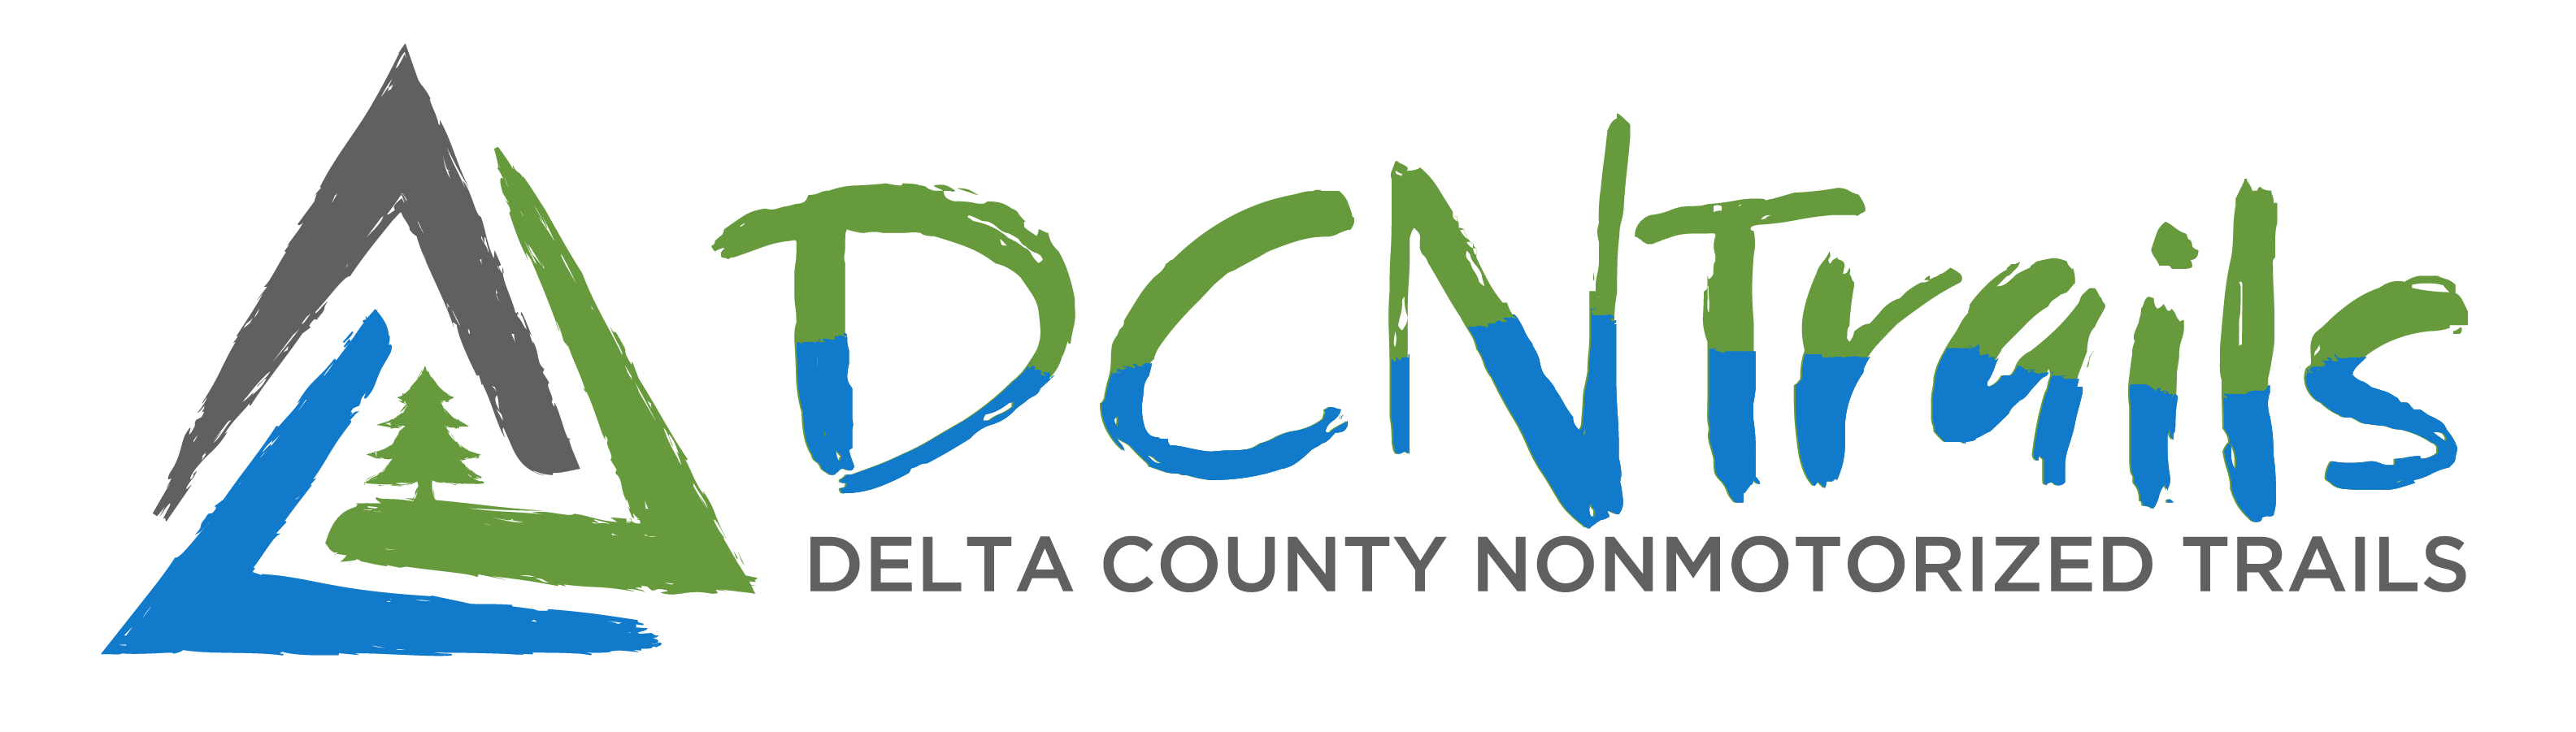 Delta County Nonmotorized Trails